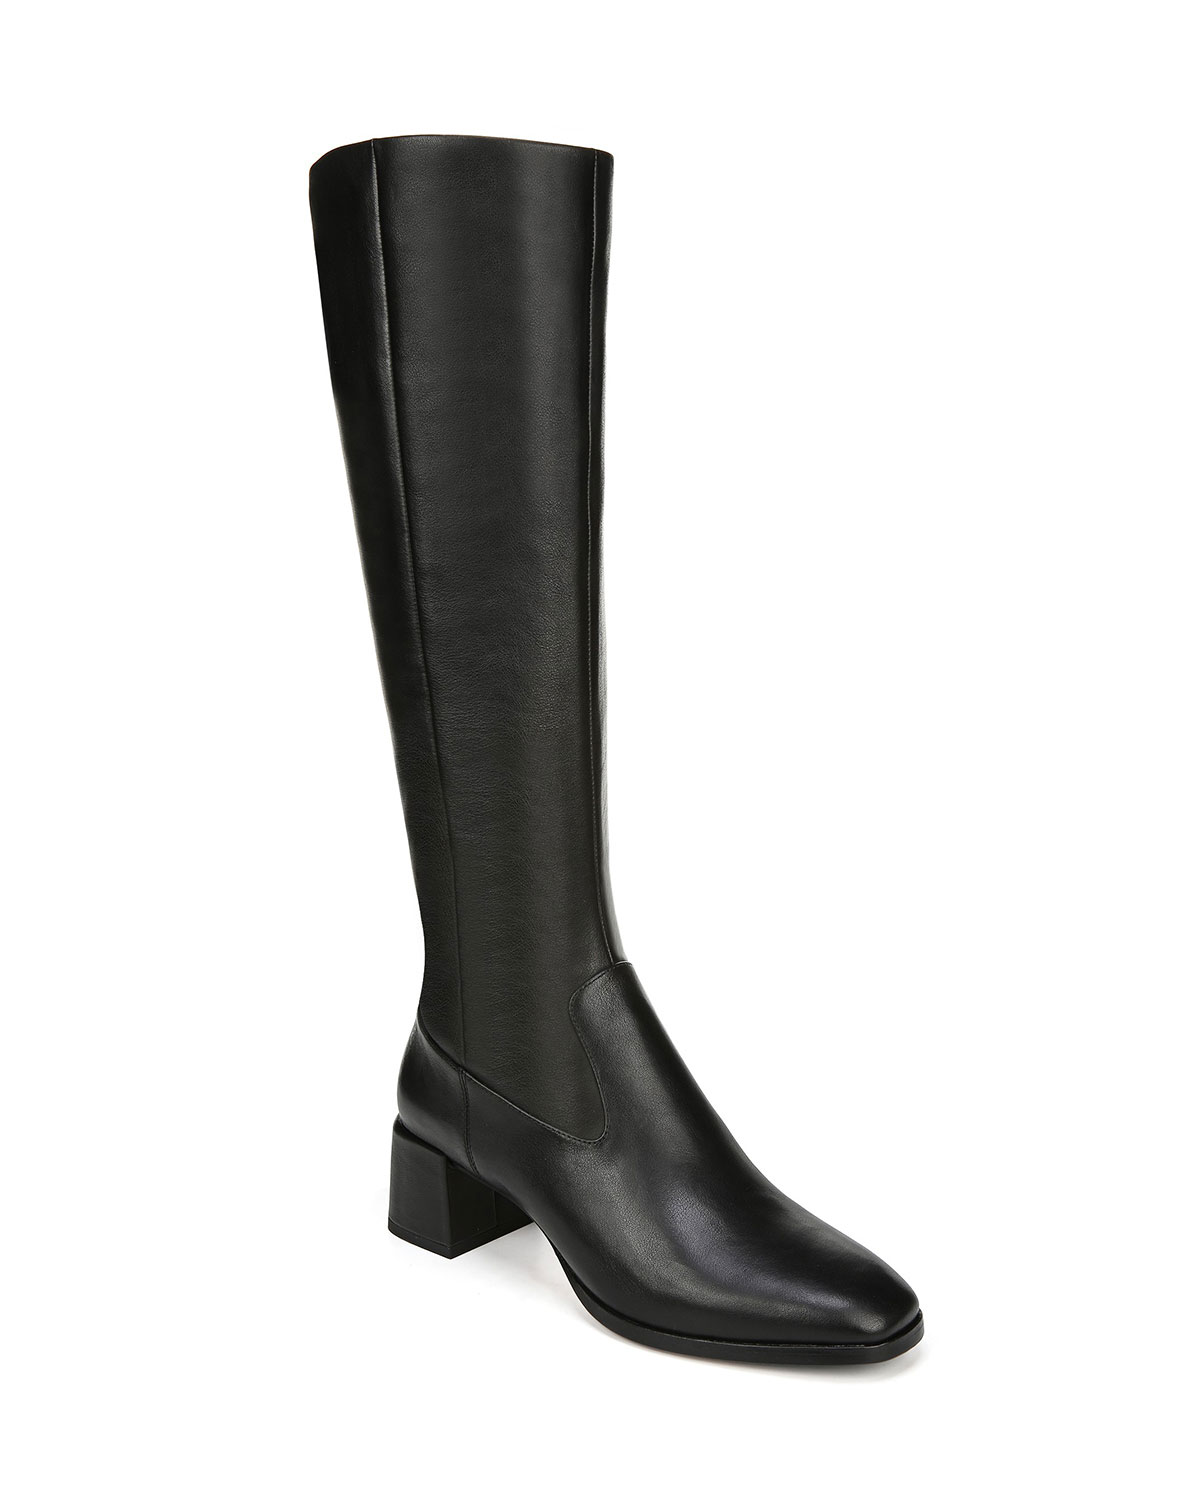 Via Spiga Boots SANORA TO-THE-KNEE LEATHER BOOTS